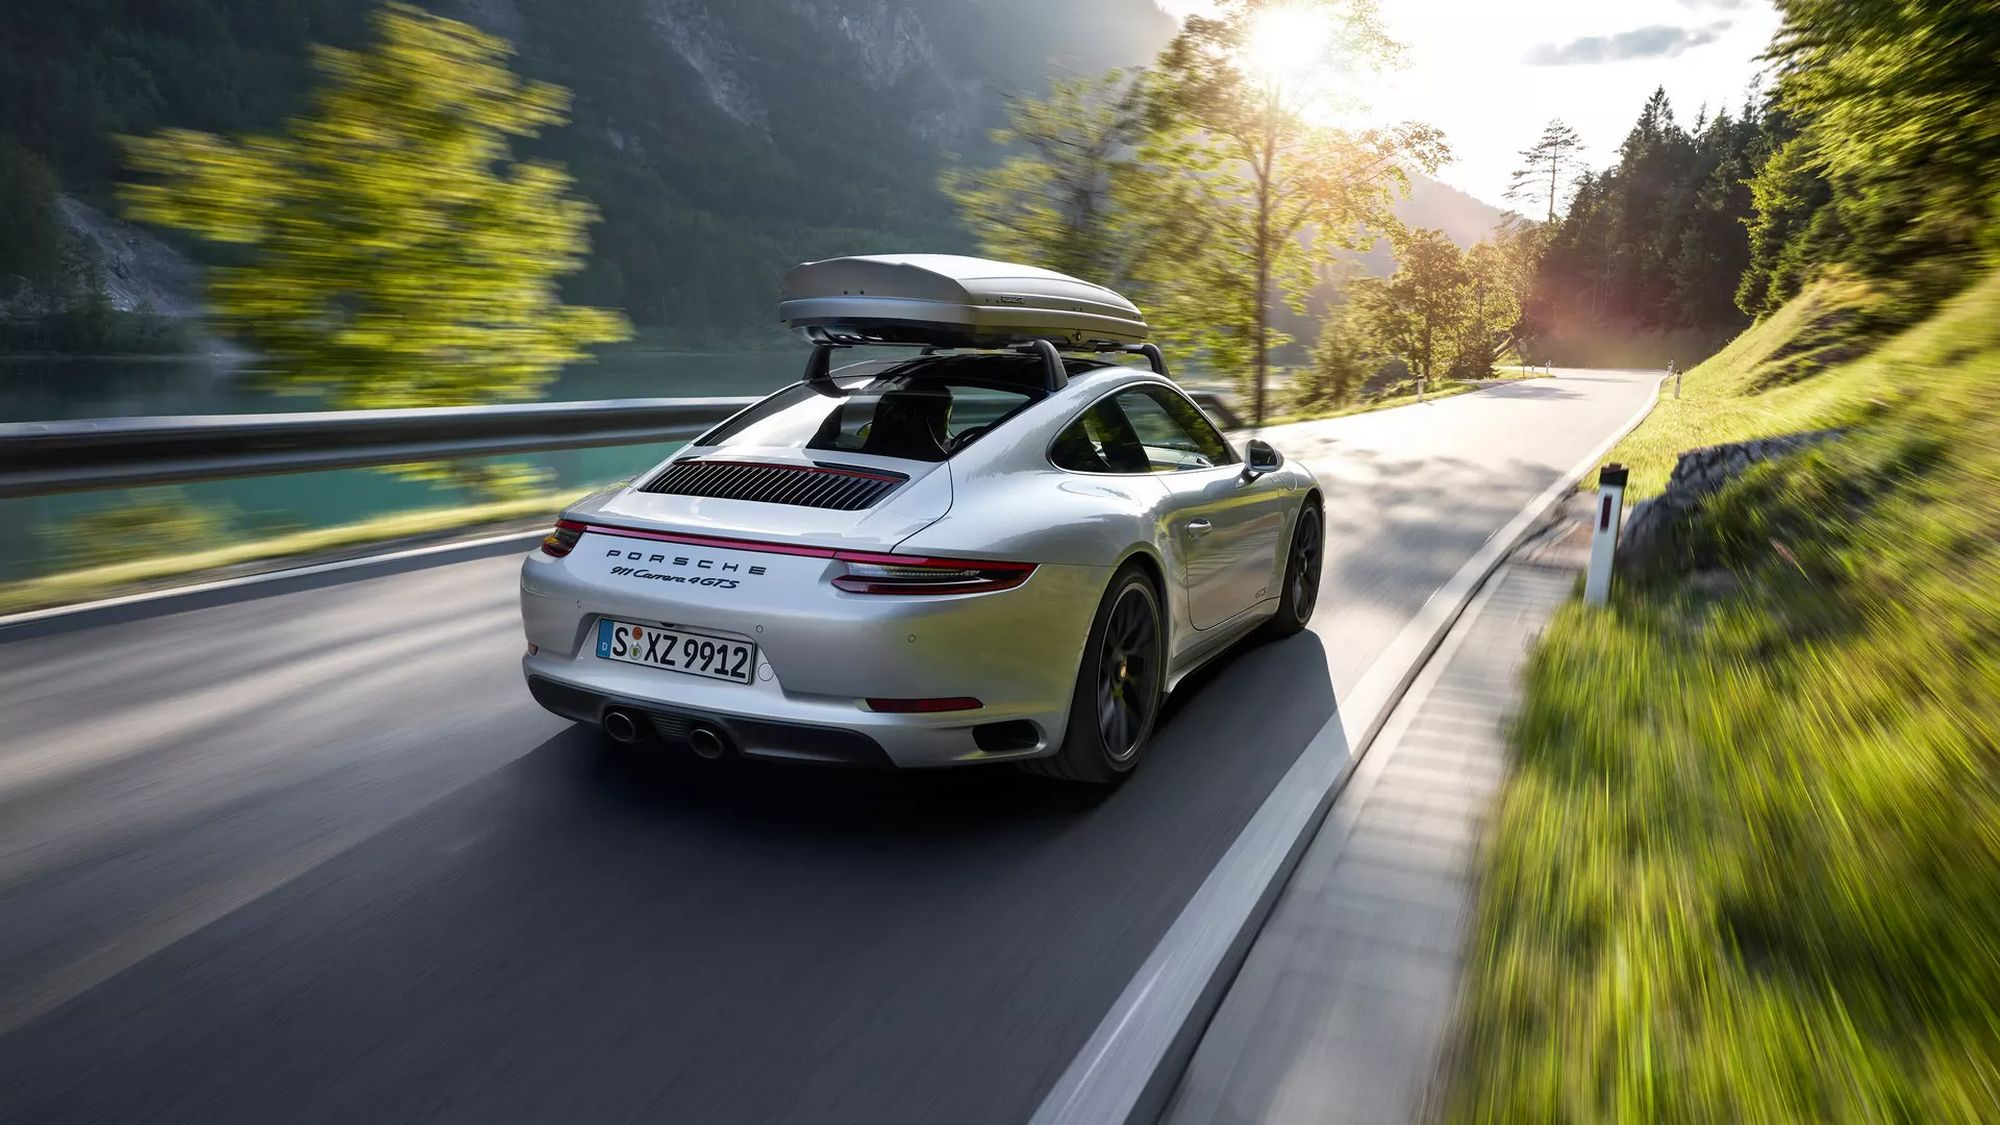 Porsche Design Roof Boxes (10)